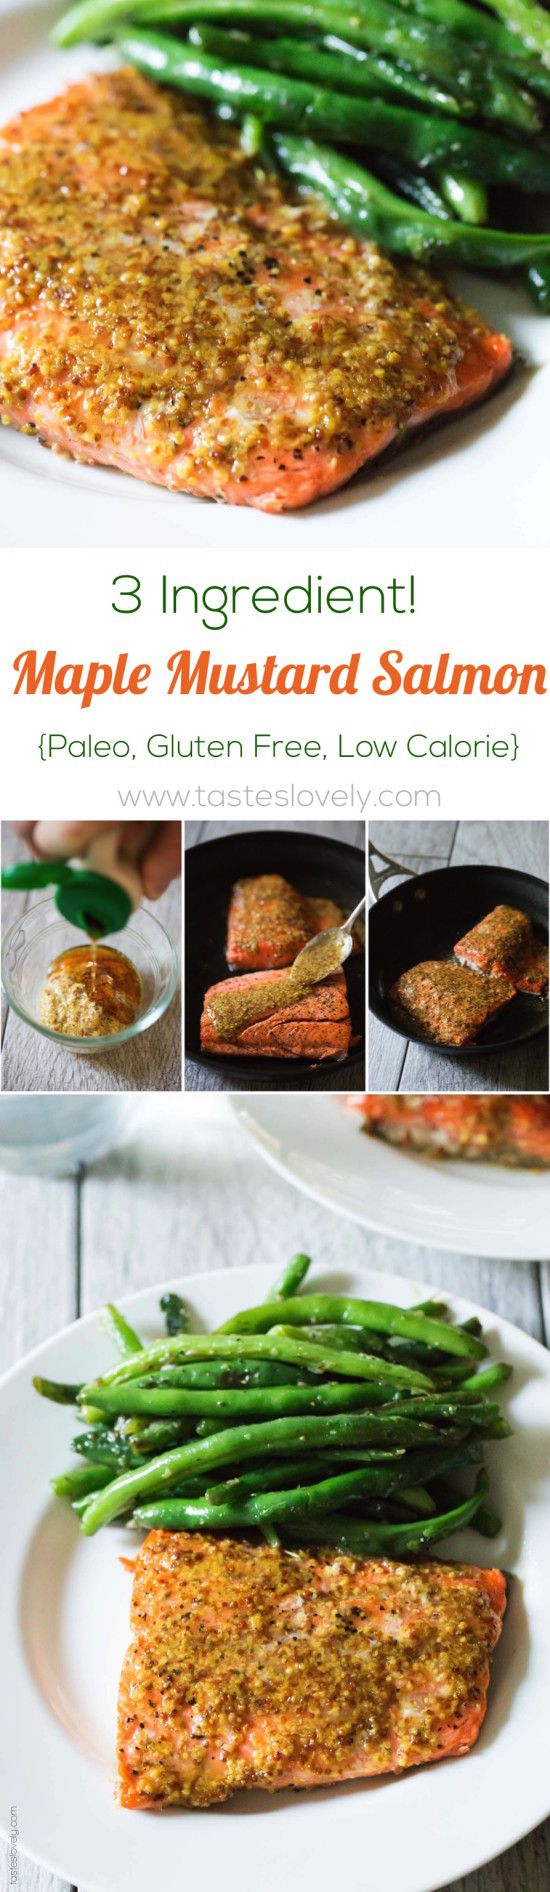 Healthy Maple Mustard Glazed Salmon recipe - just 3 ingredients and 20 minutes! (paleo, gluten free, dairy free, skinny, low calorie)